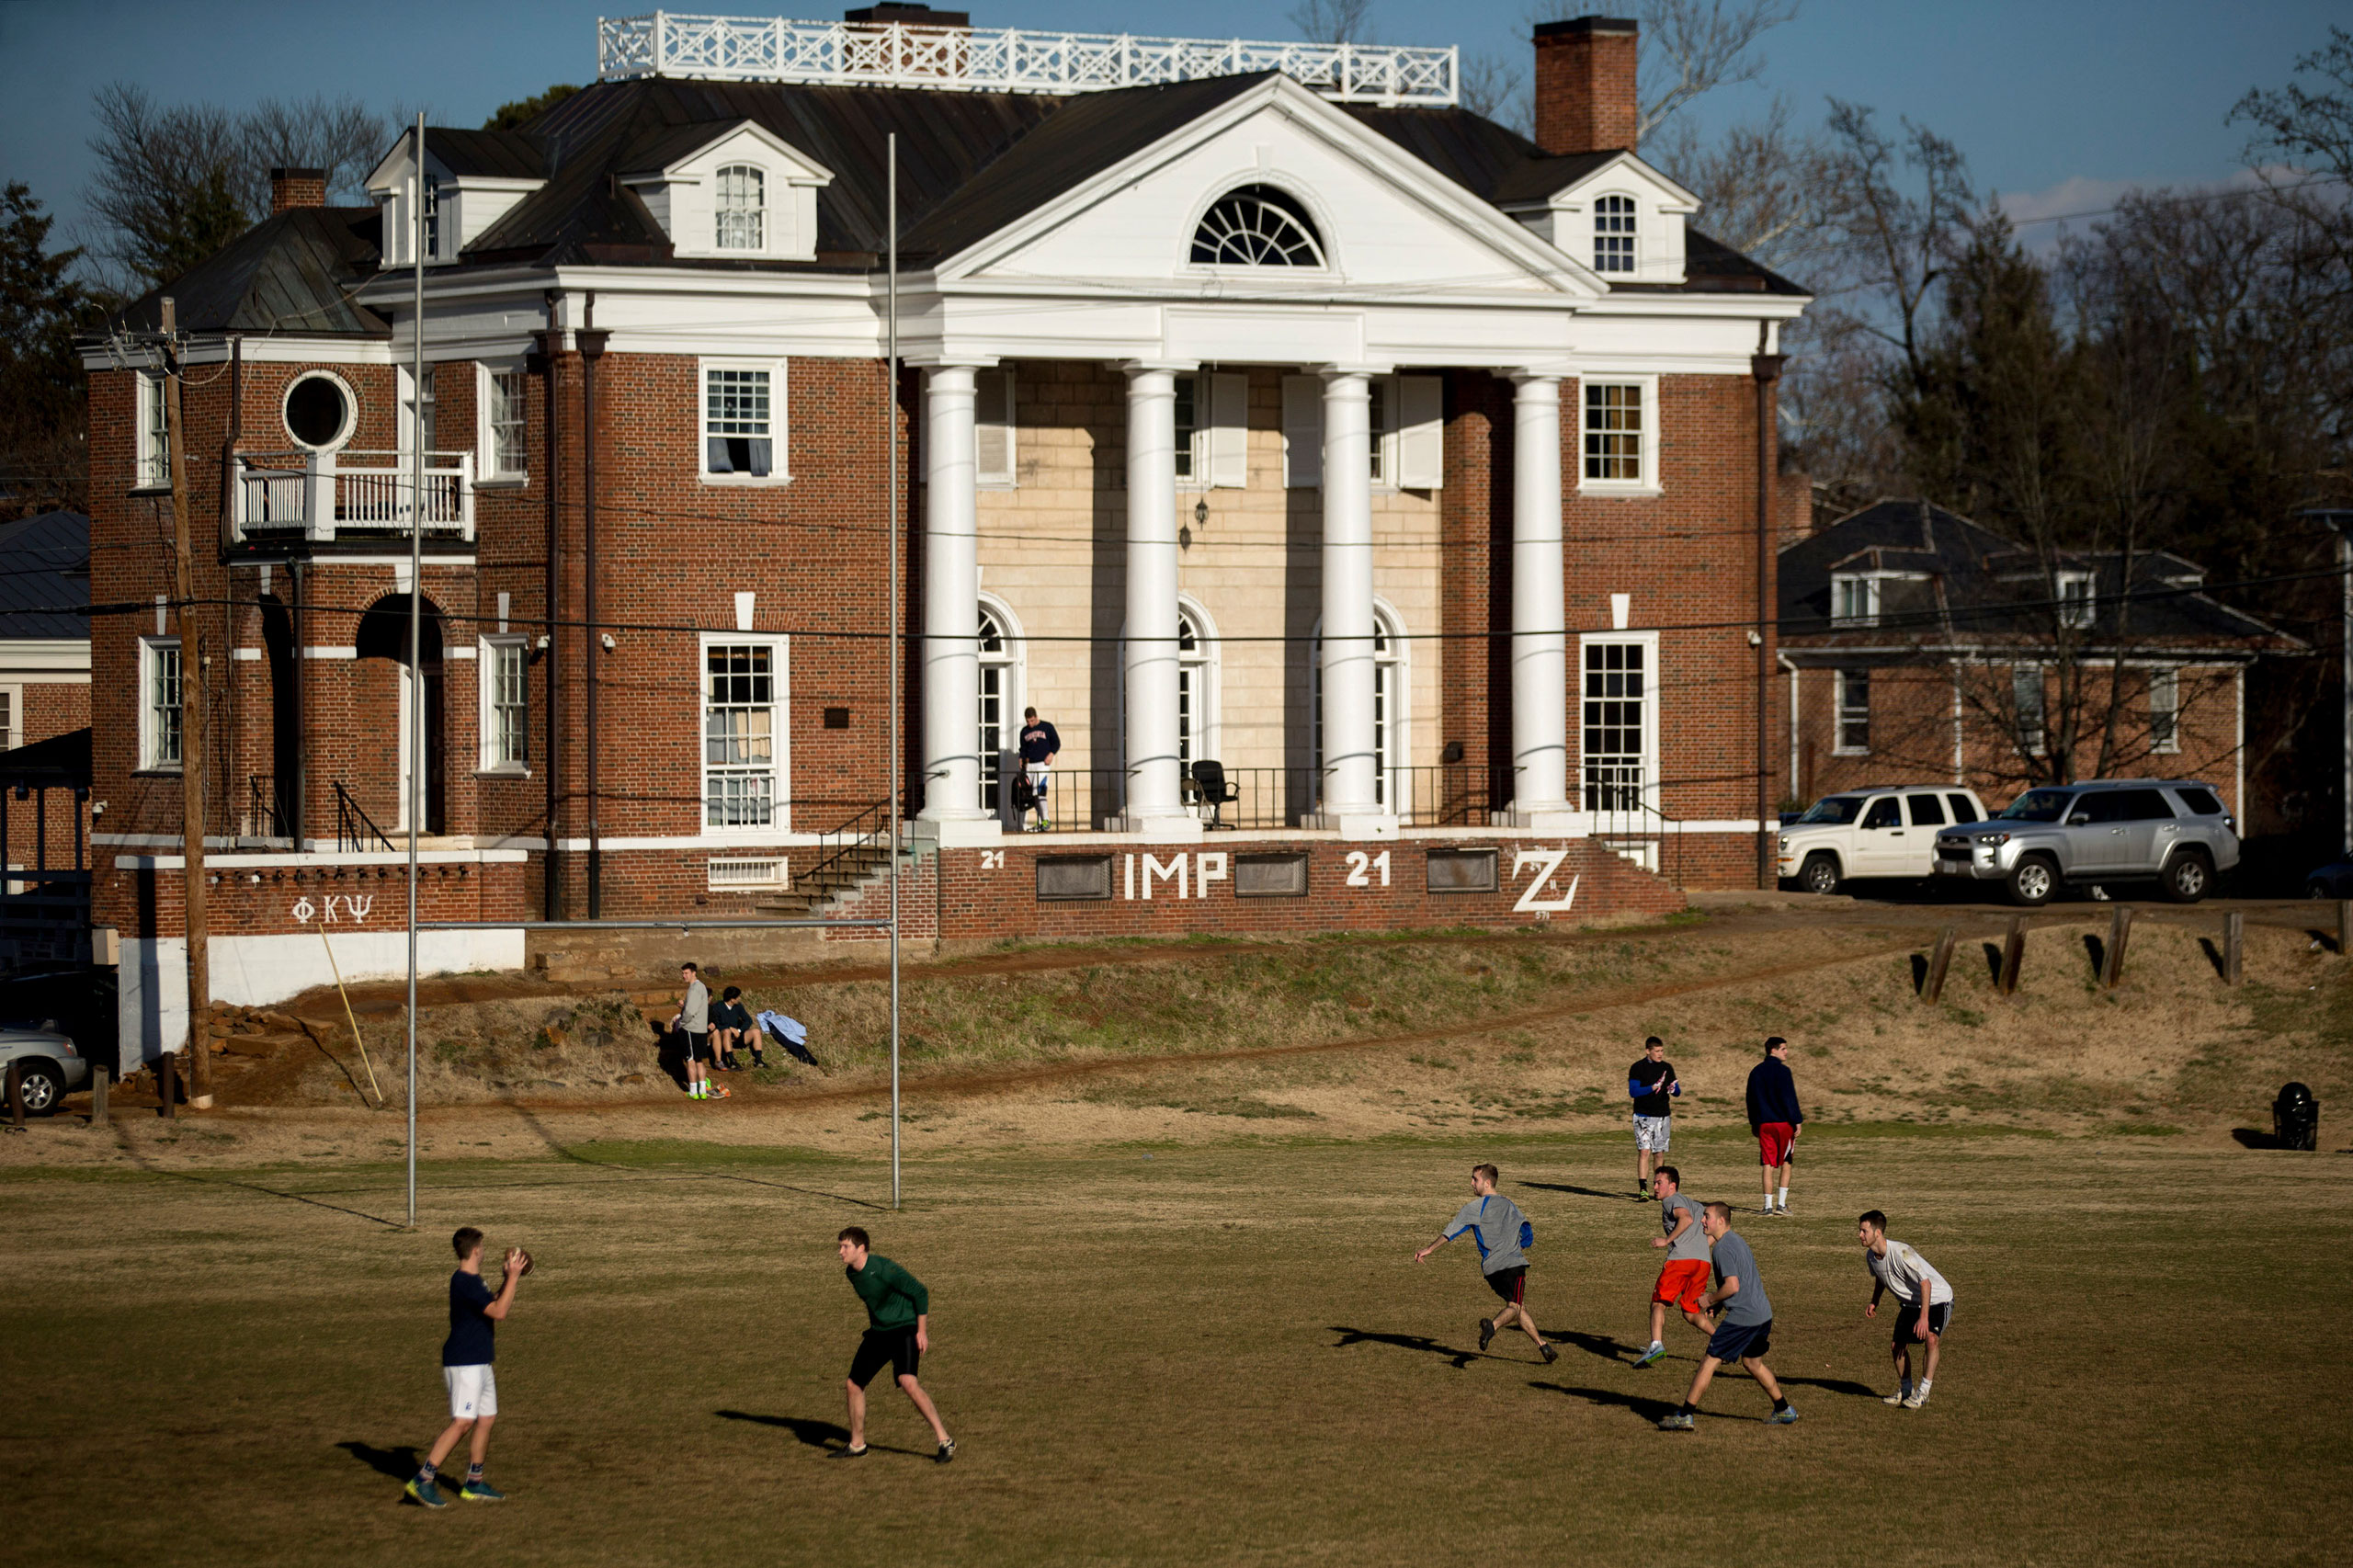 Students play football on the Madison Bowl field of the University of Virginia (UVA) campus next to the Phi Kappa Psi fraternity in Charlottesville, Va., on Jan. 16, 2015.